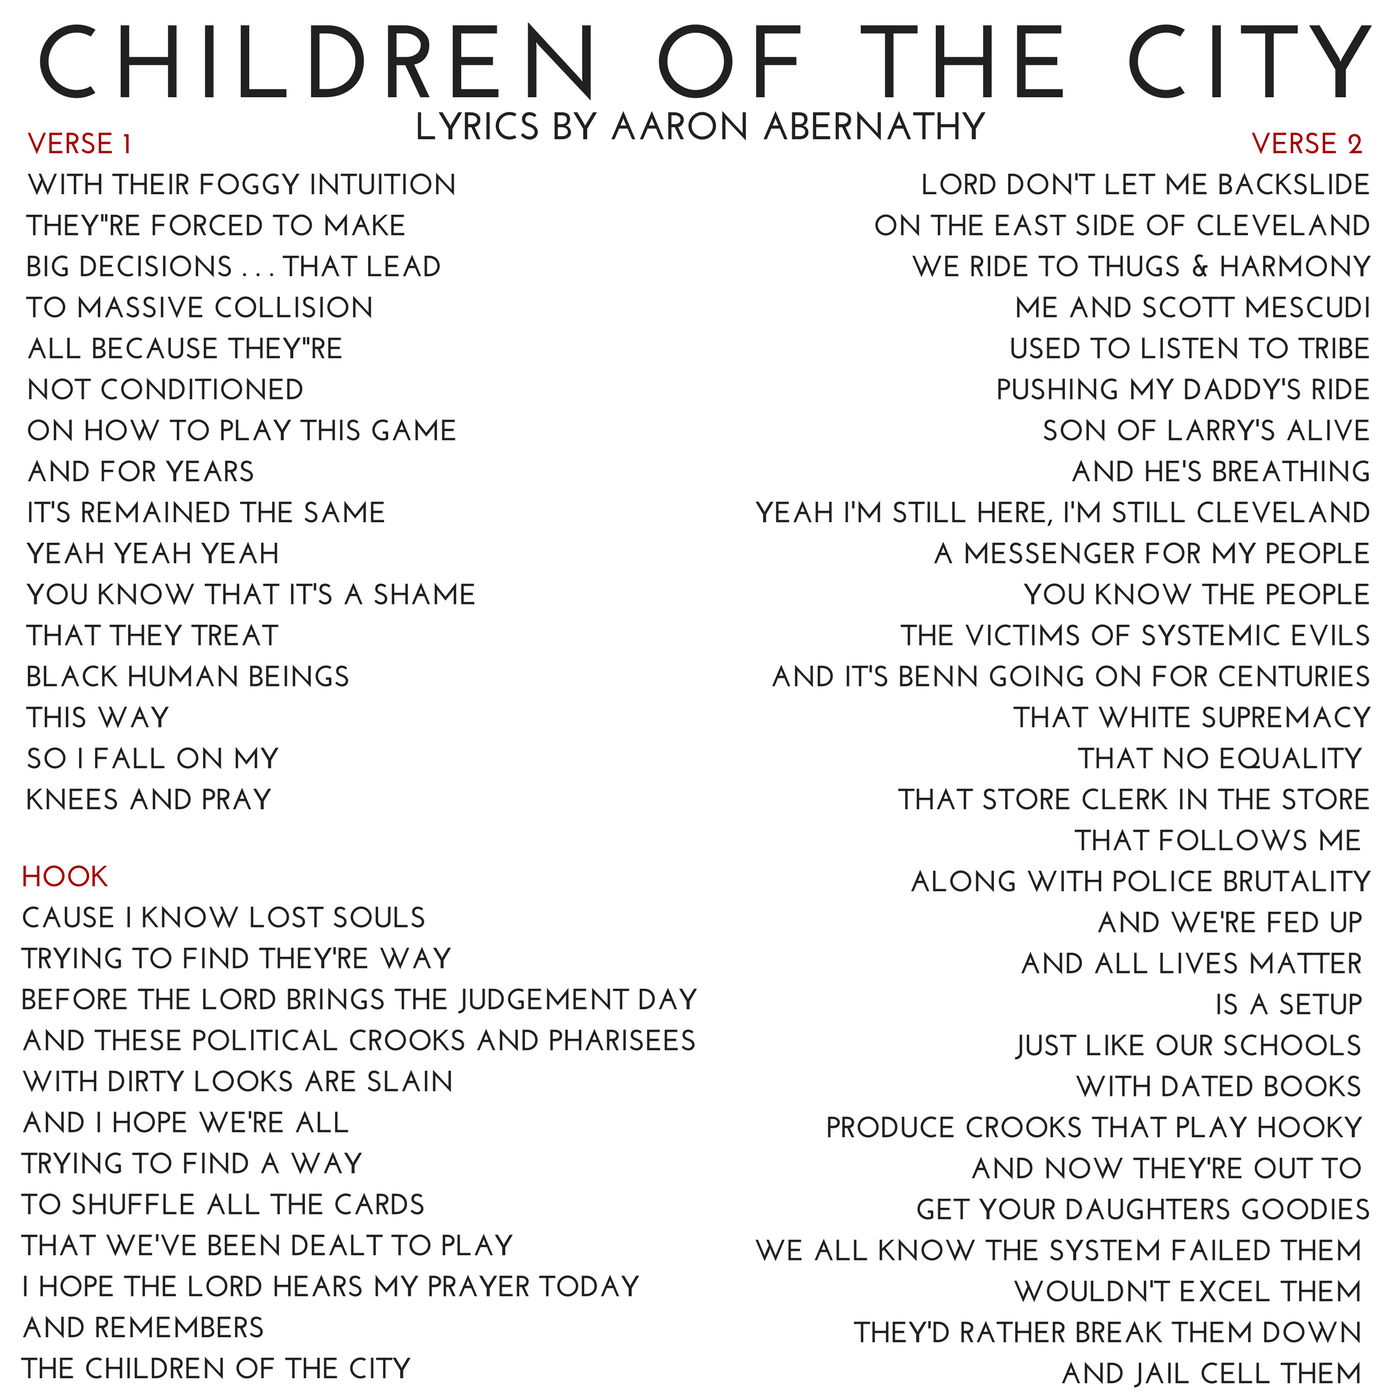 02 CHILDREN OF THE CITY Lyrics by AAron Abernathy.png